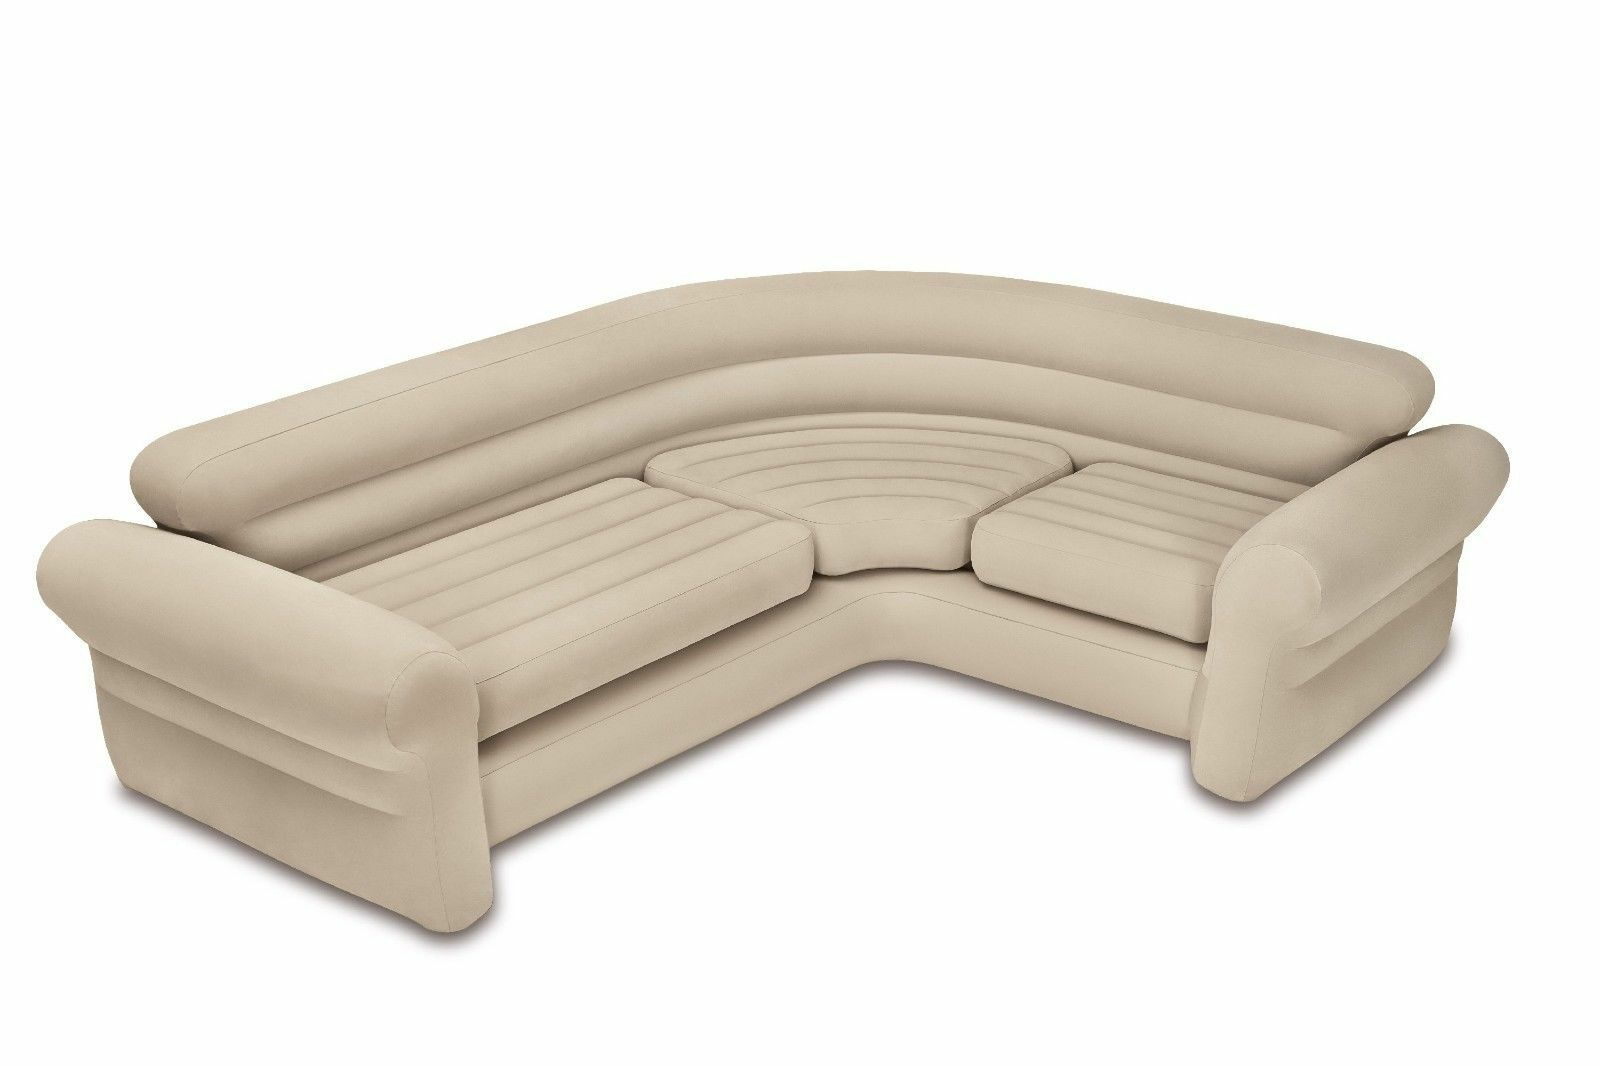 Perfekt Intex Inflatable Pull Out Sofa India Functionalities Net